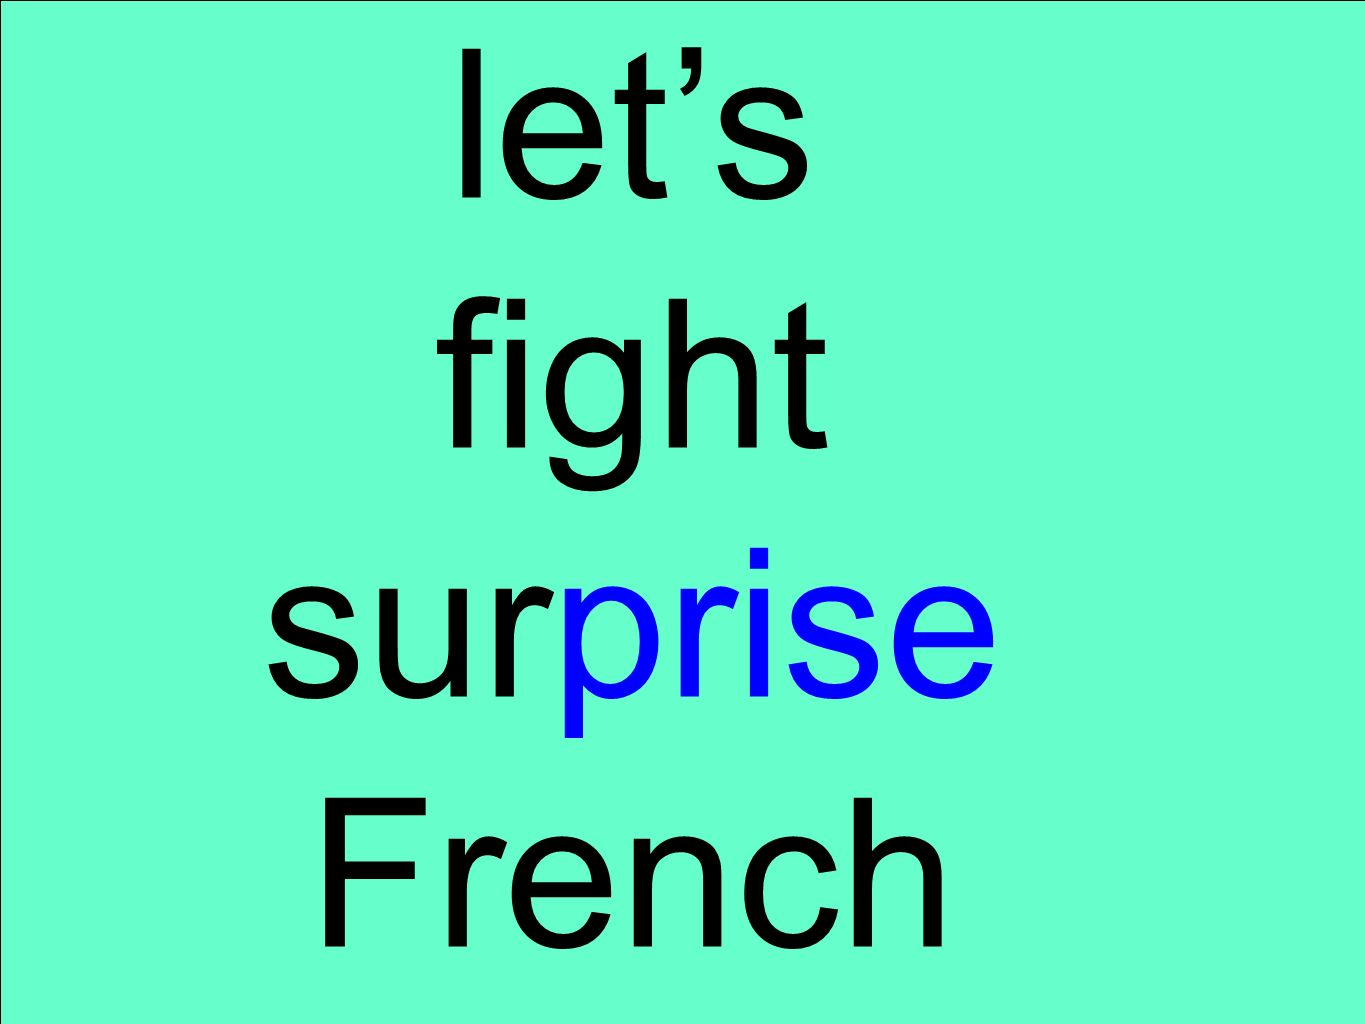 let's fight surprise French